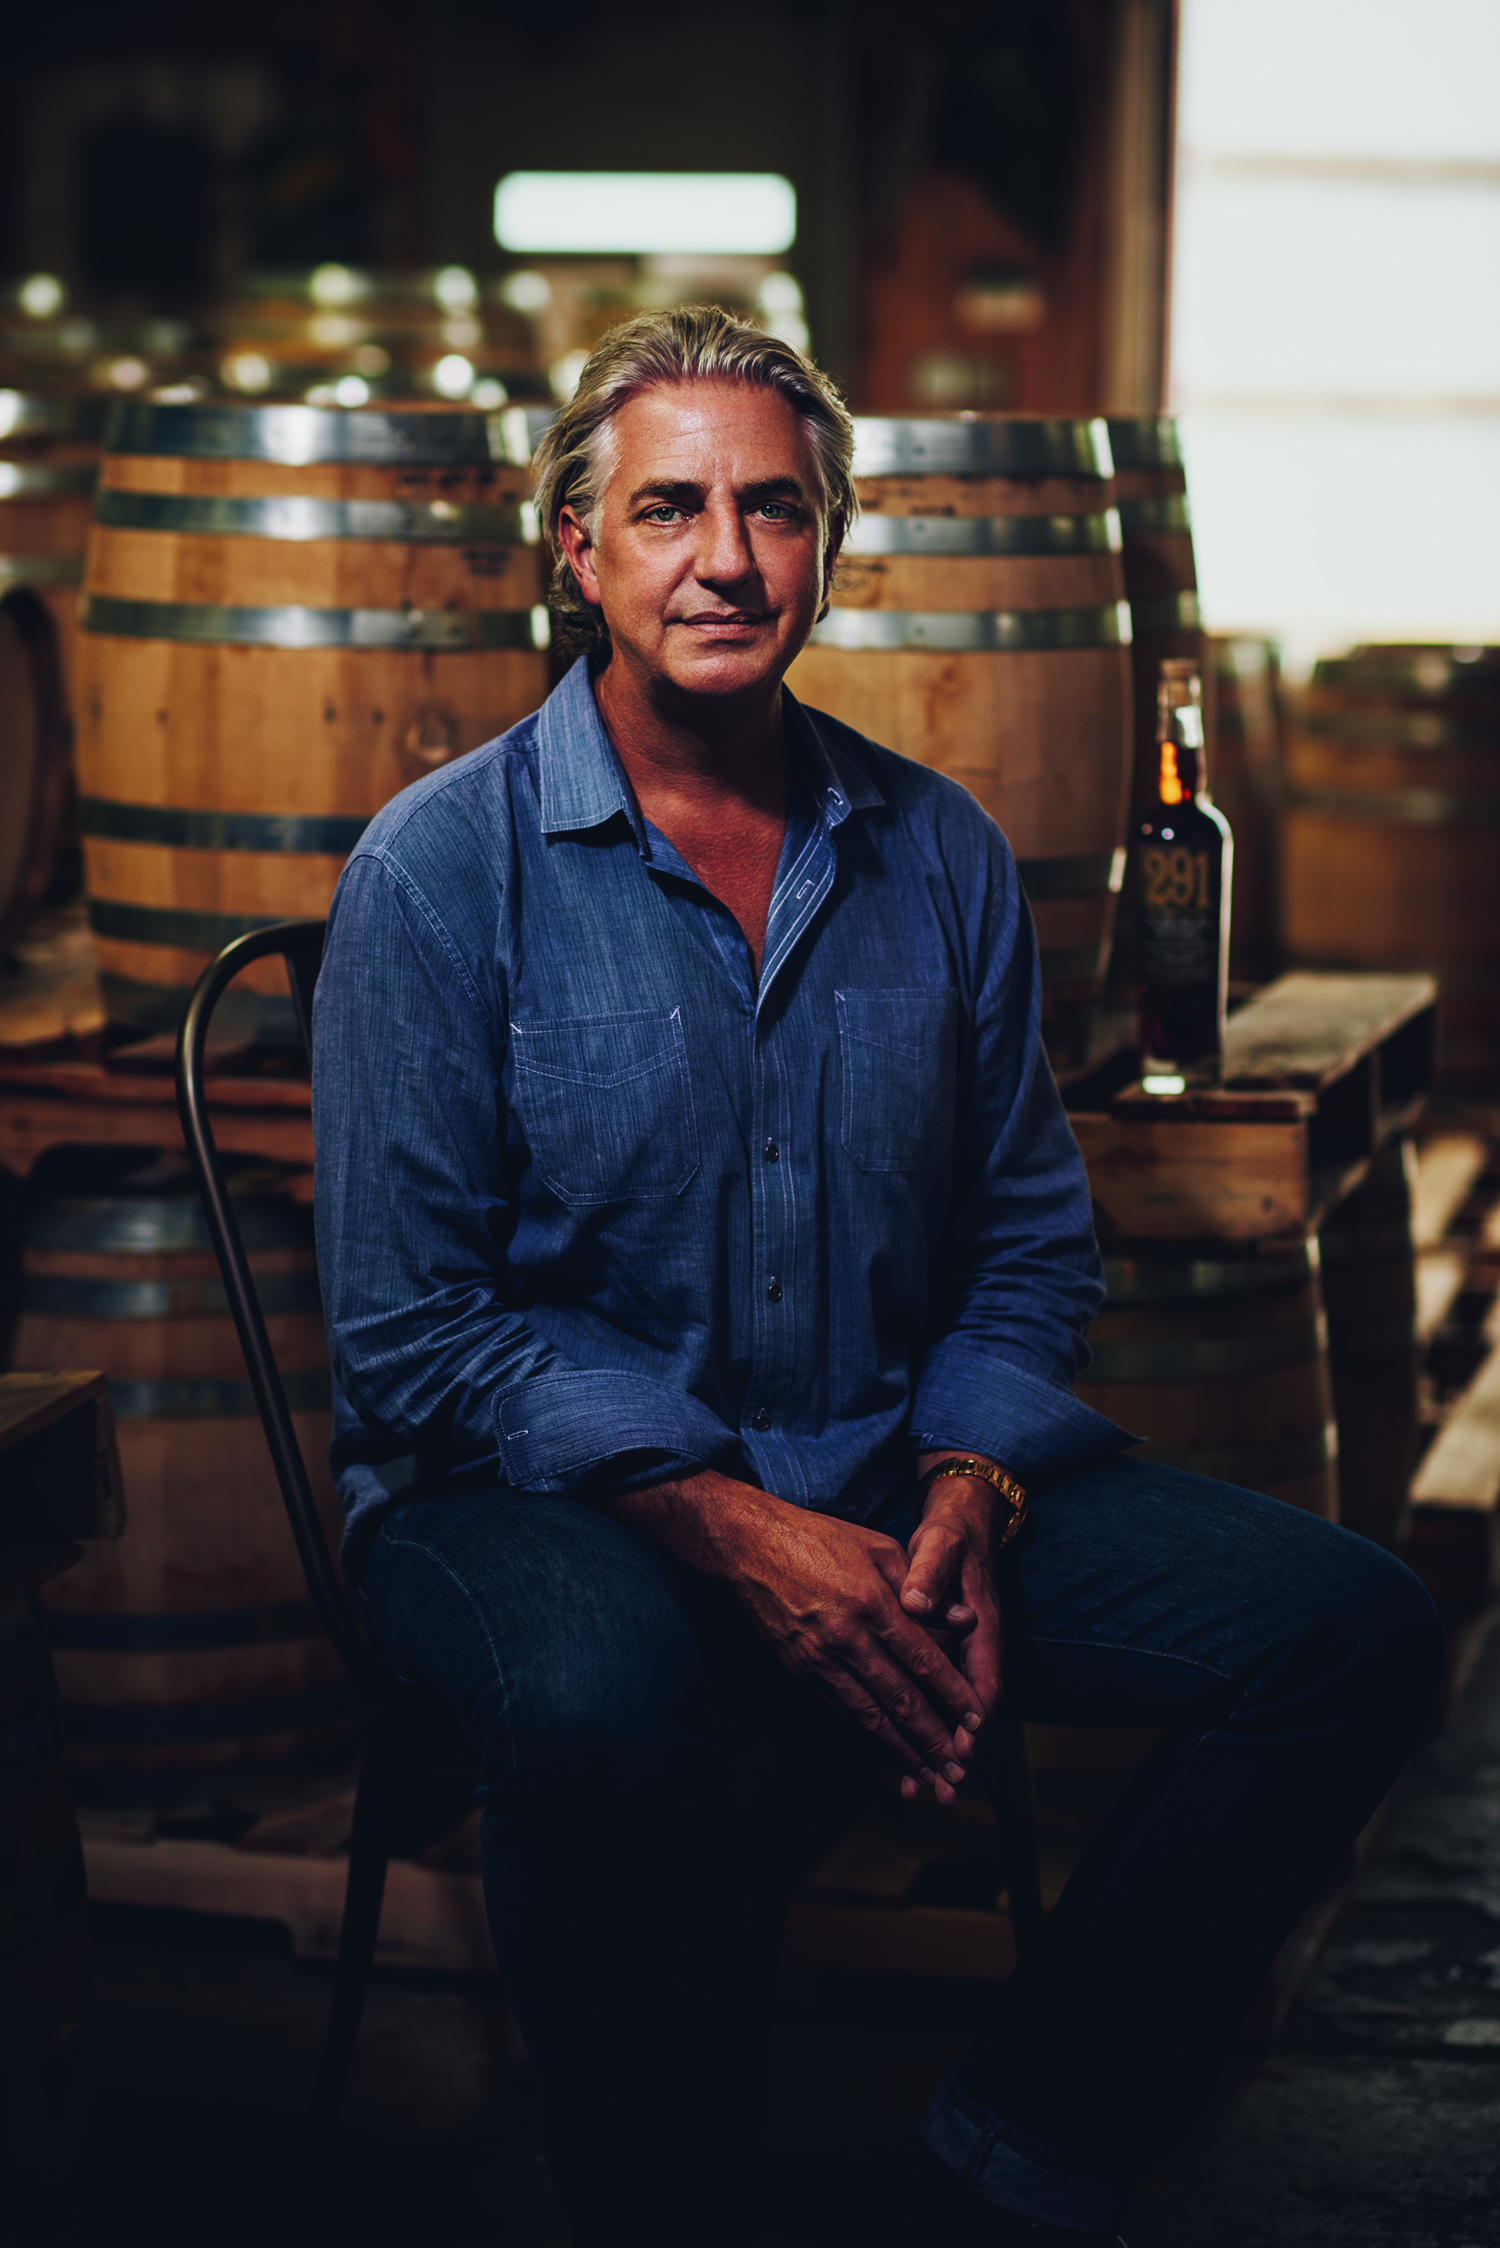 Michael Myers is the founder of Distillery 291 in Colorado Springs. Photo courtesy of Distillery 291